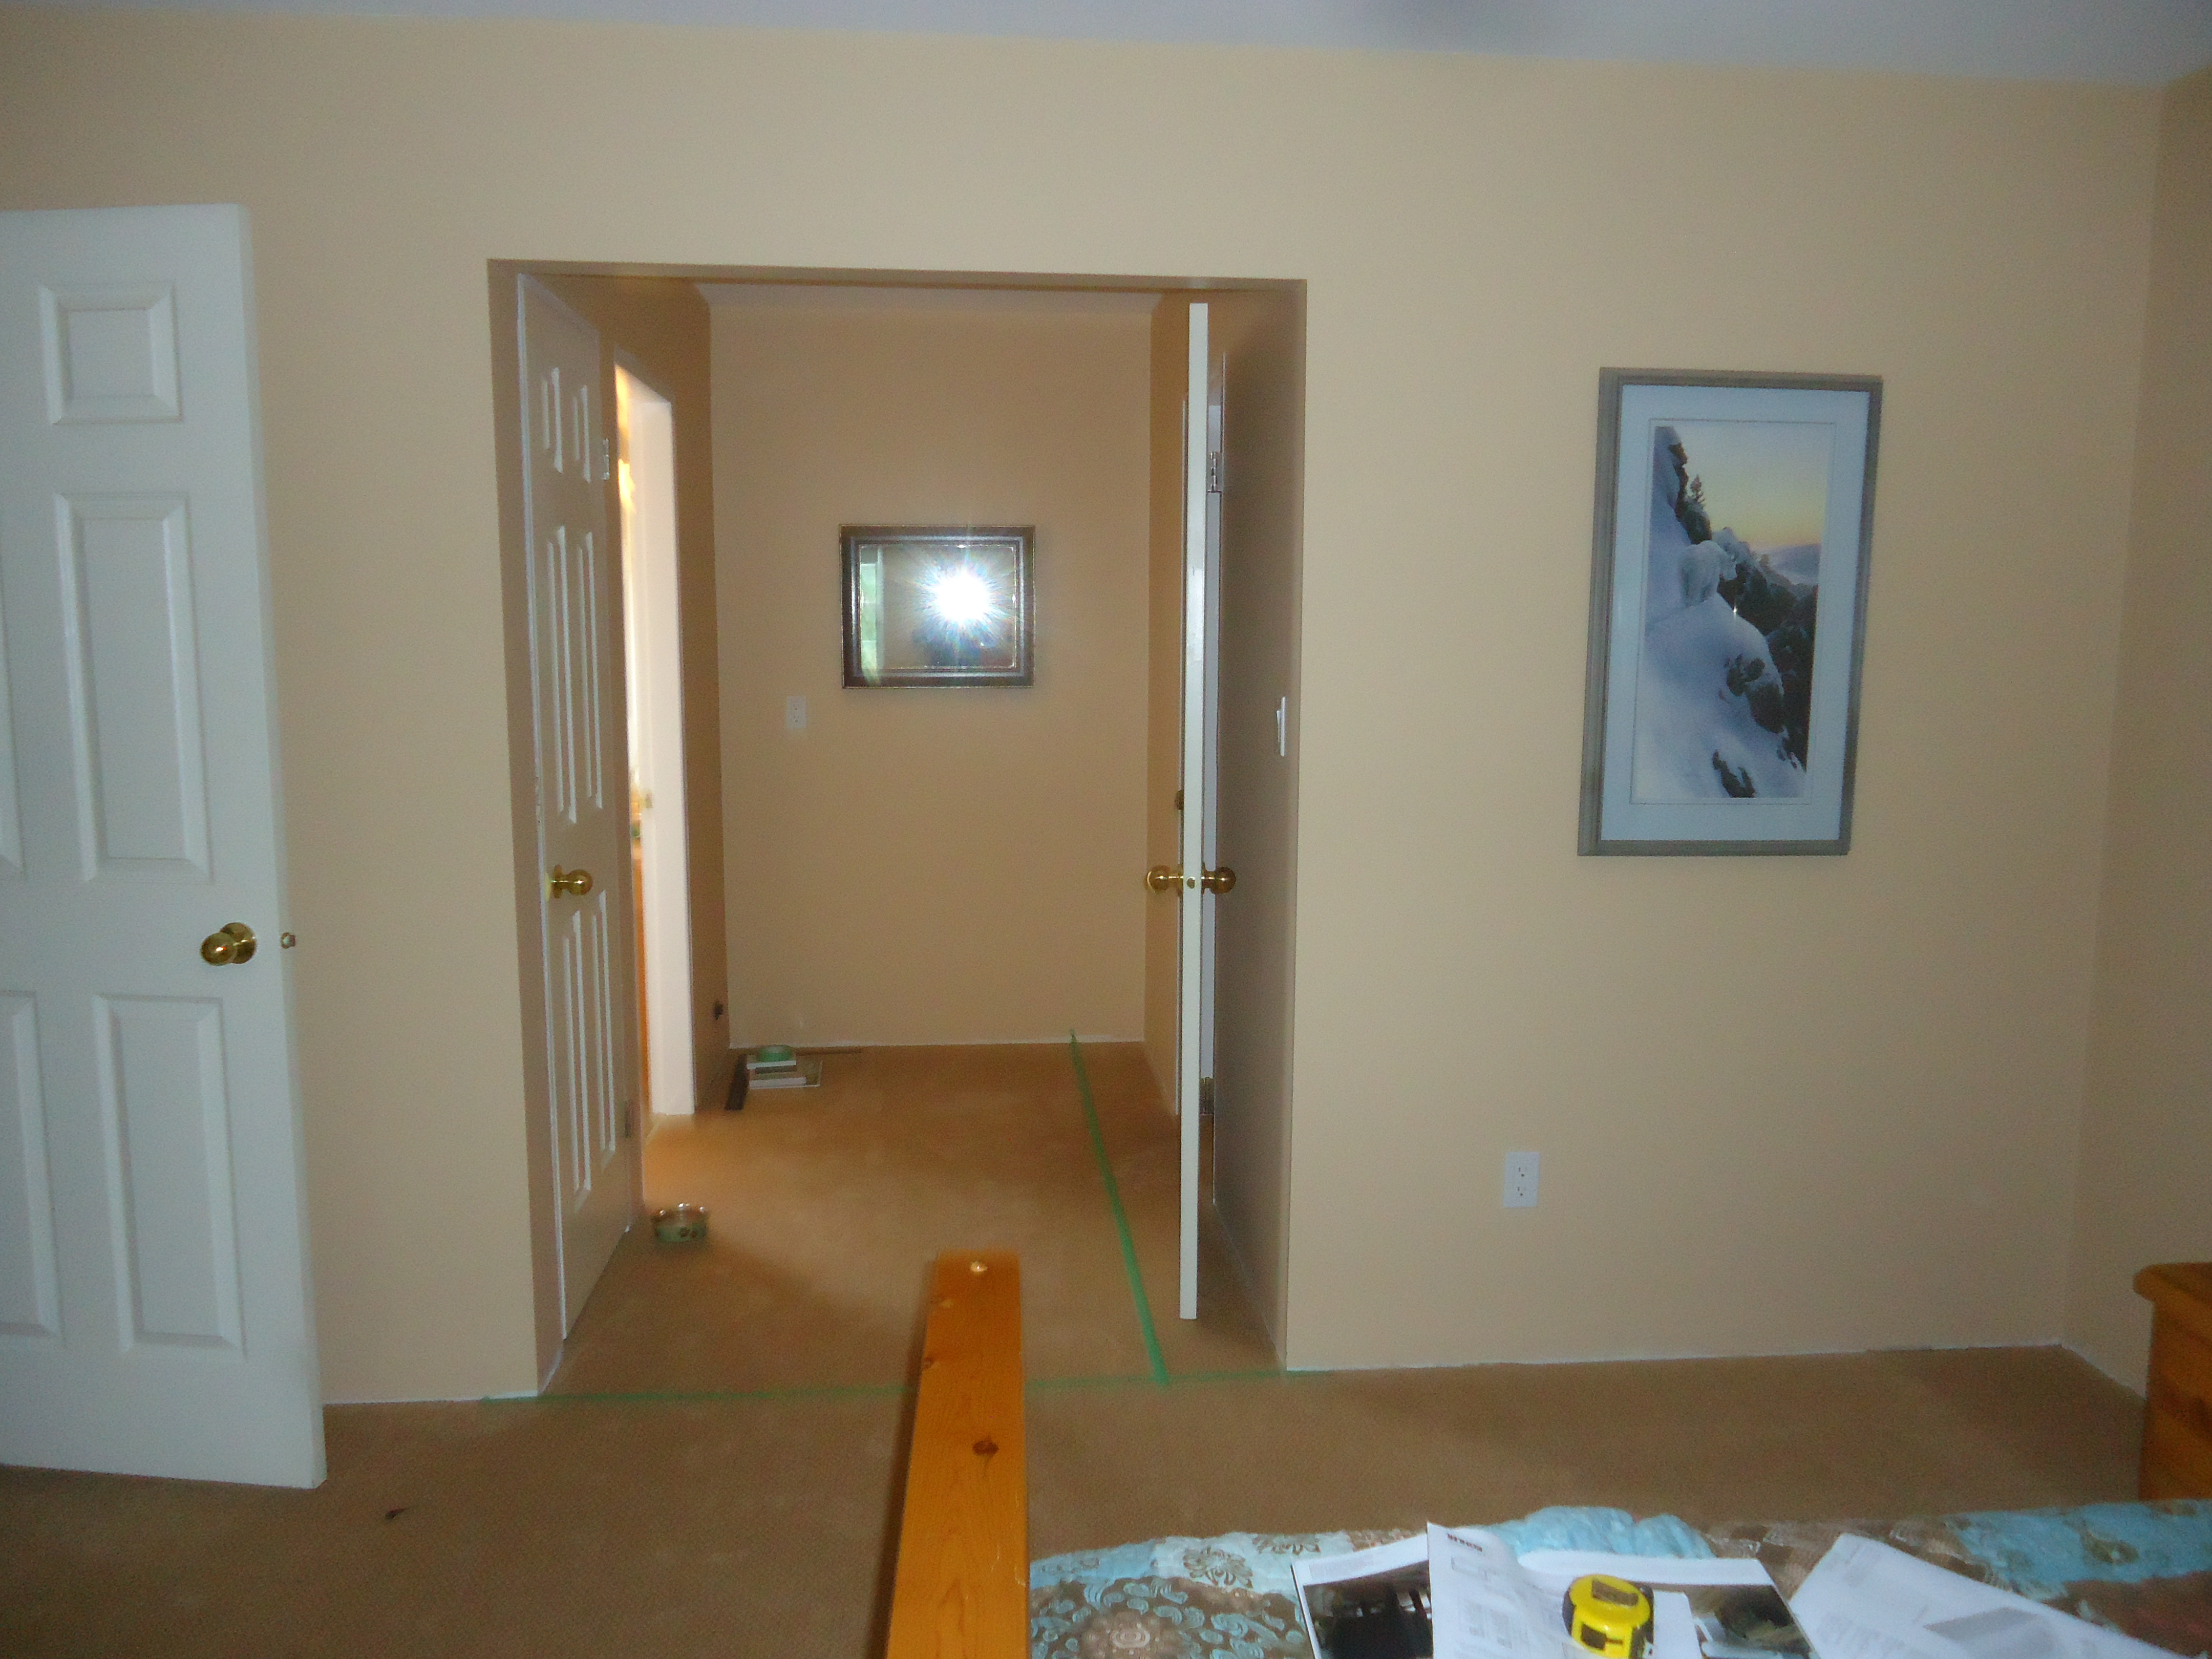 Between the door to the bathroom on the left and the door to our closet on the right, there is a vanity area. On our original house plans it showed an area ...